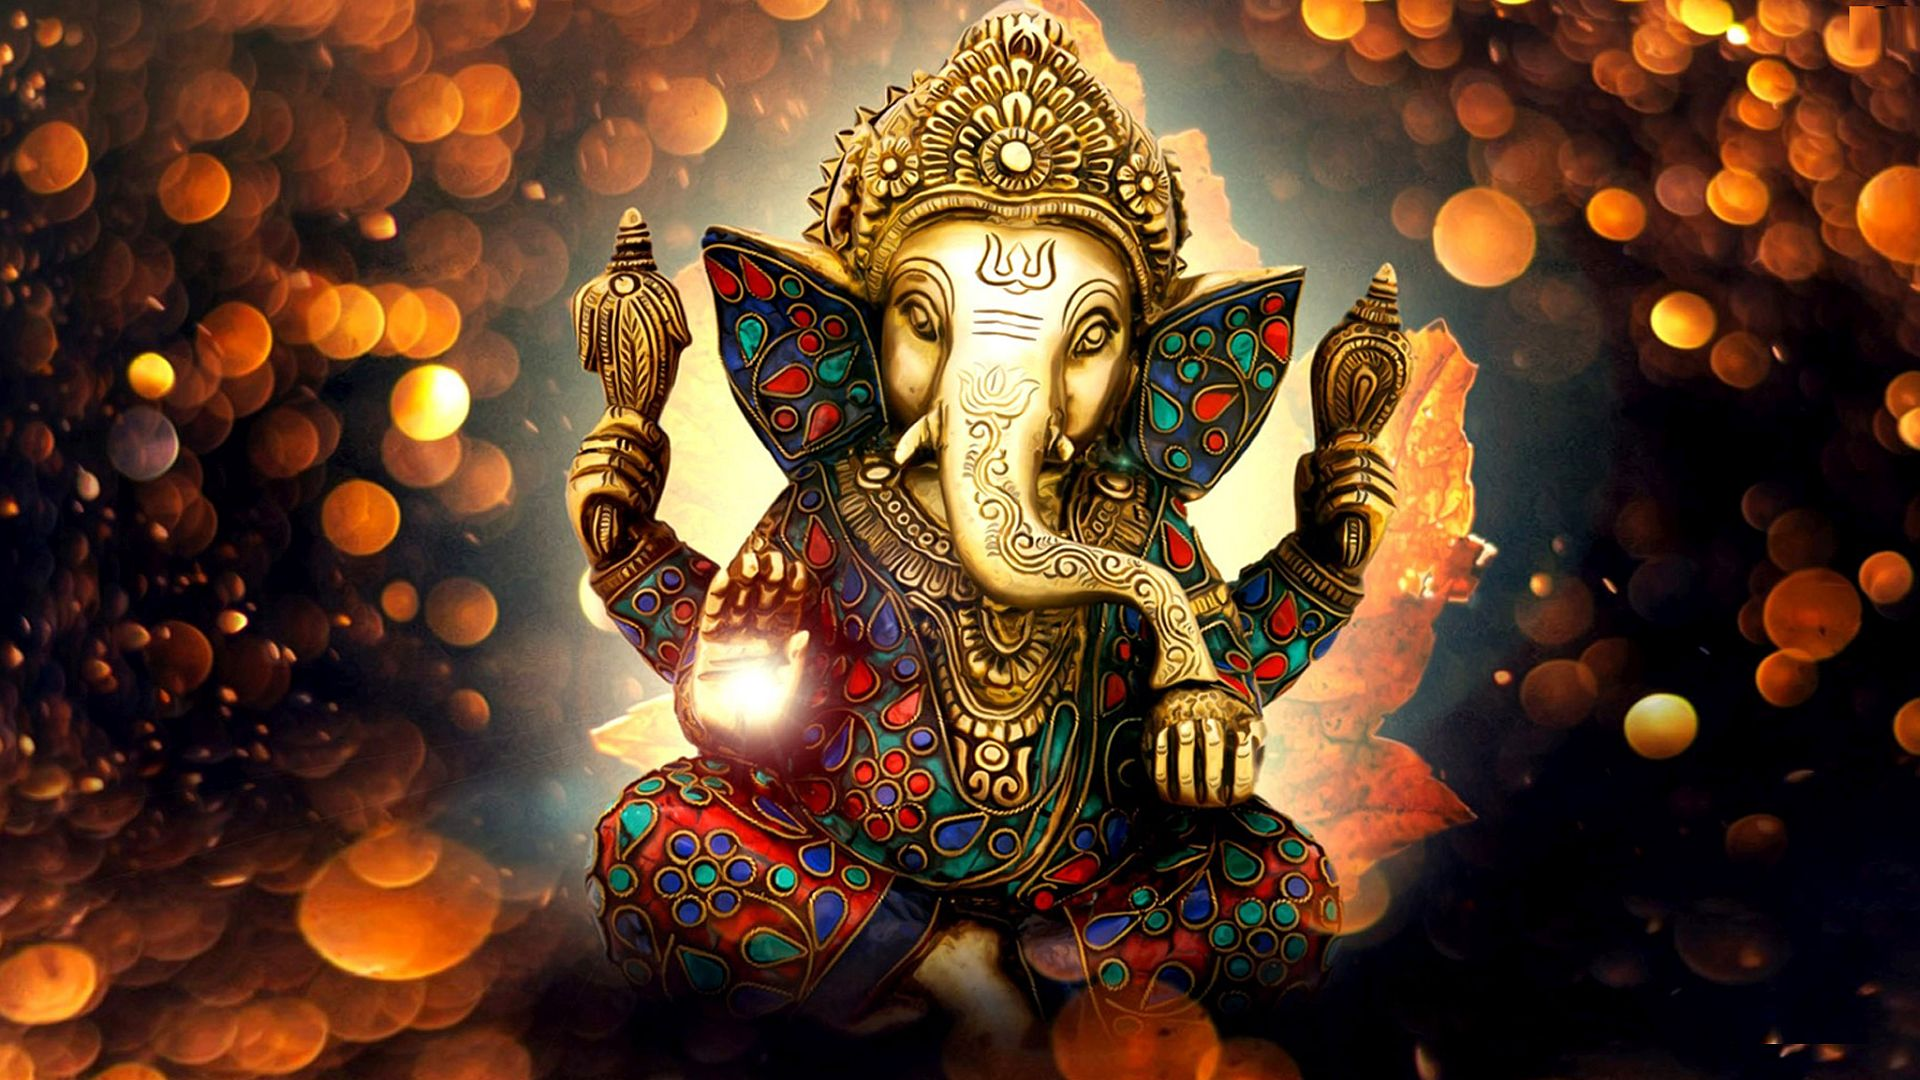 Lord Wallpaper Hd Download Lord Ganesha Hd Wallpapers 1080p God Hd Wallpapers